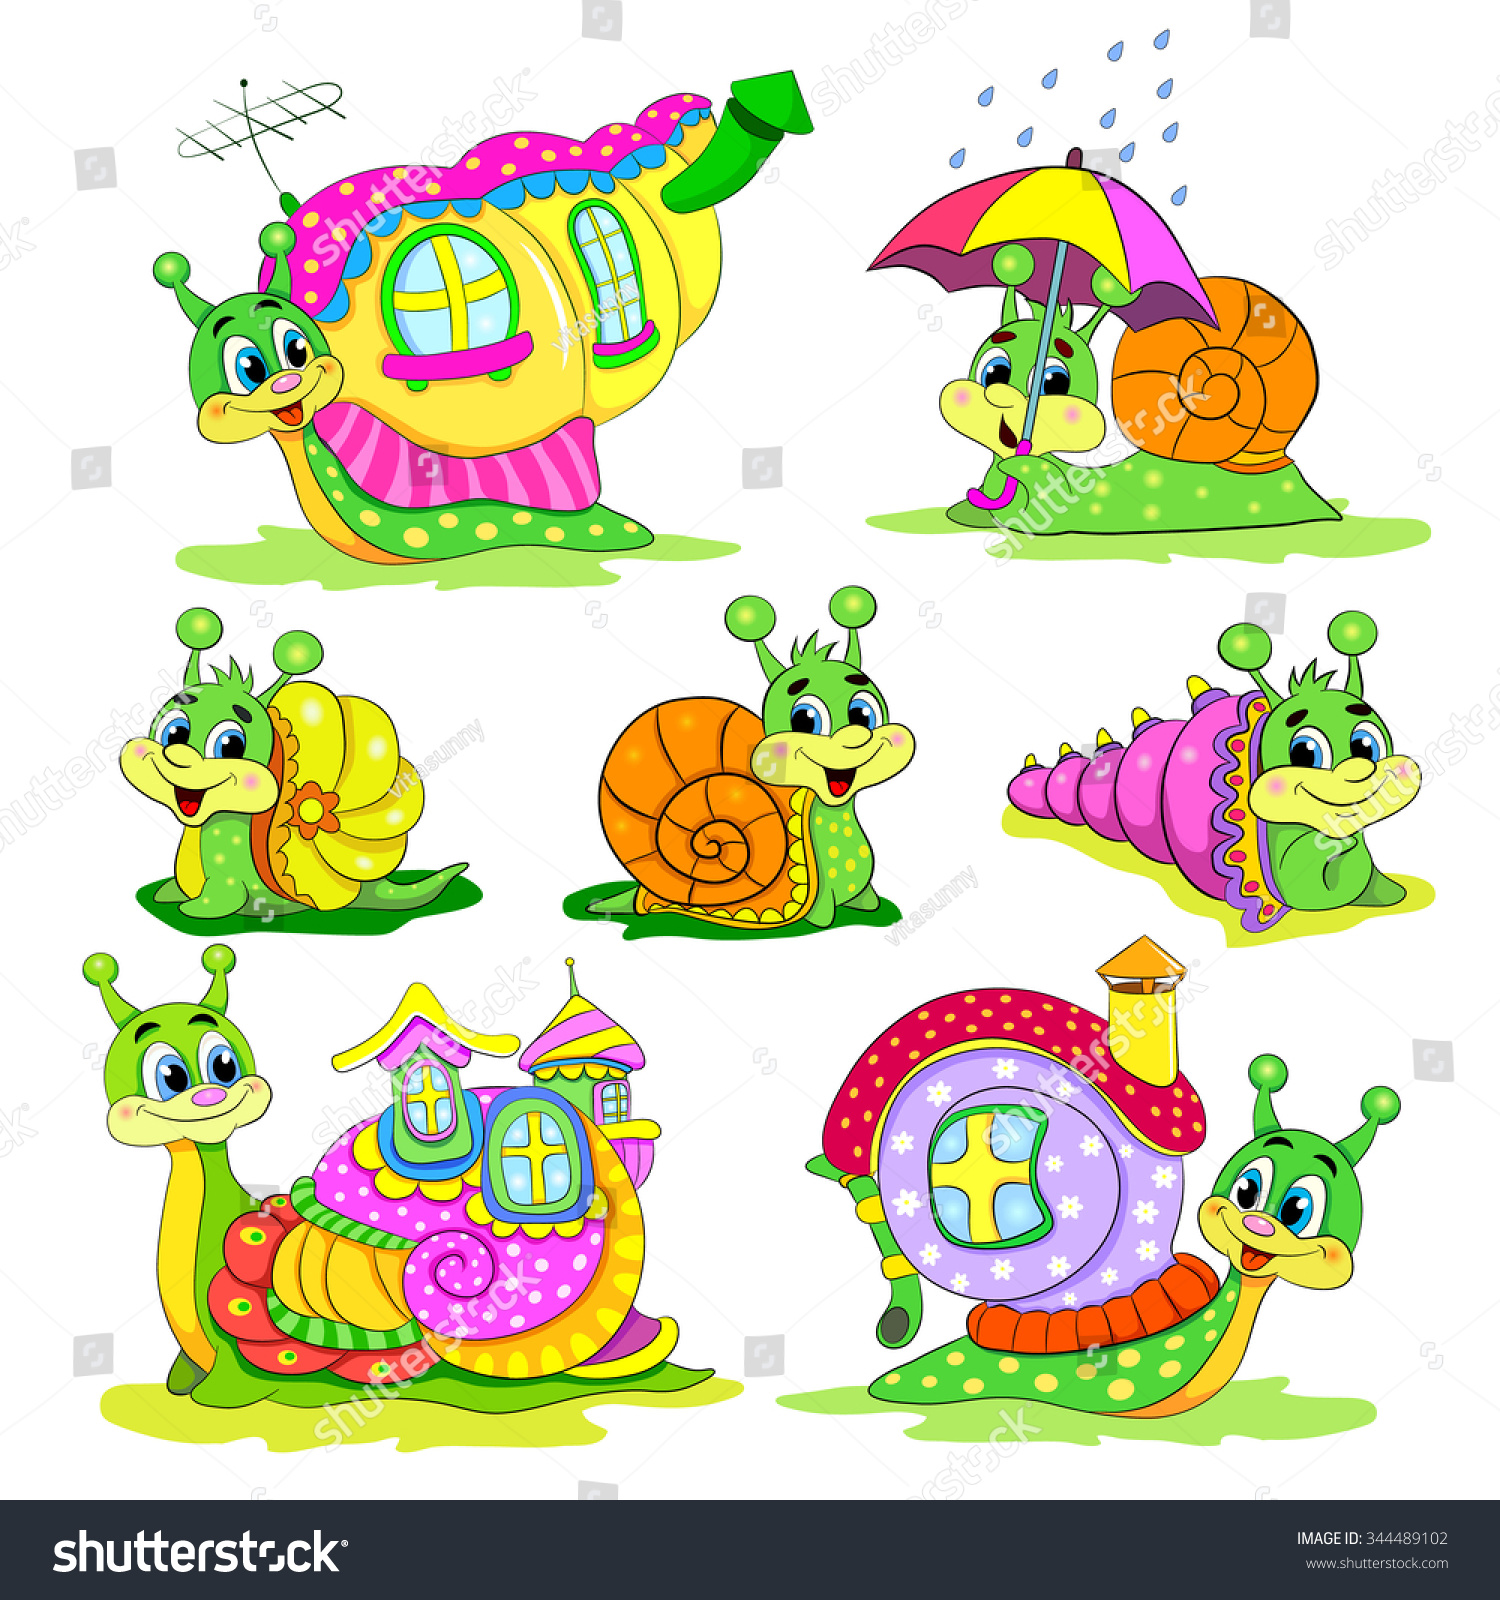 Cartoon funny snail coloring book stock vector 232624141 - Set Of Cartoon Funny Snails With Houses